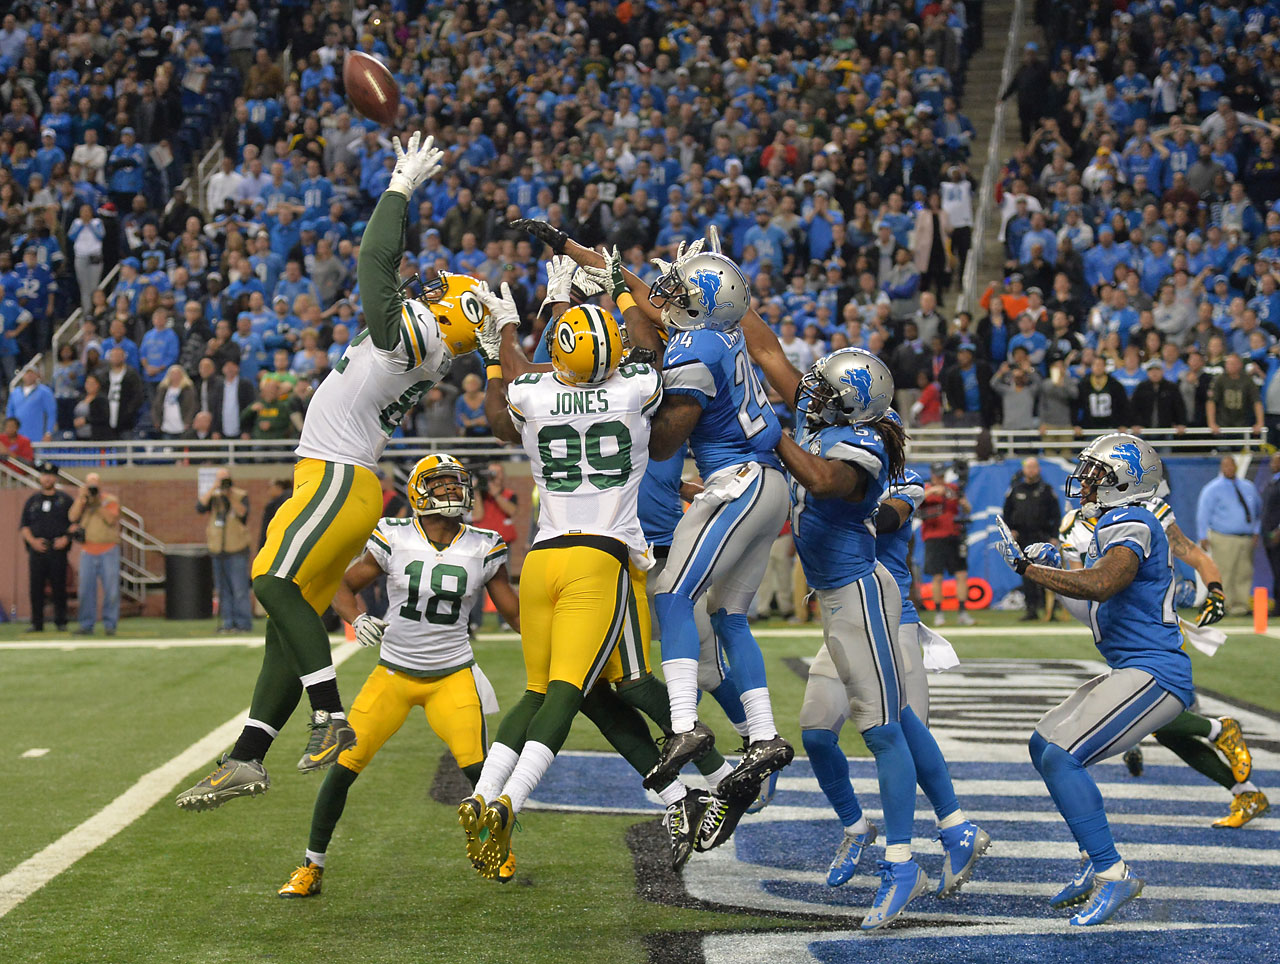 Green Bay Packers tight end Richard Rodgers catches the winning touchdown with no time remaining during Green Bay's amazing 27-23 victory over Detroit on Dec. 3, 2015, making it one of the greatest receptions of the Super Bowl era.